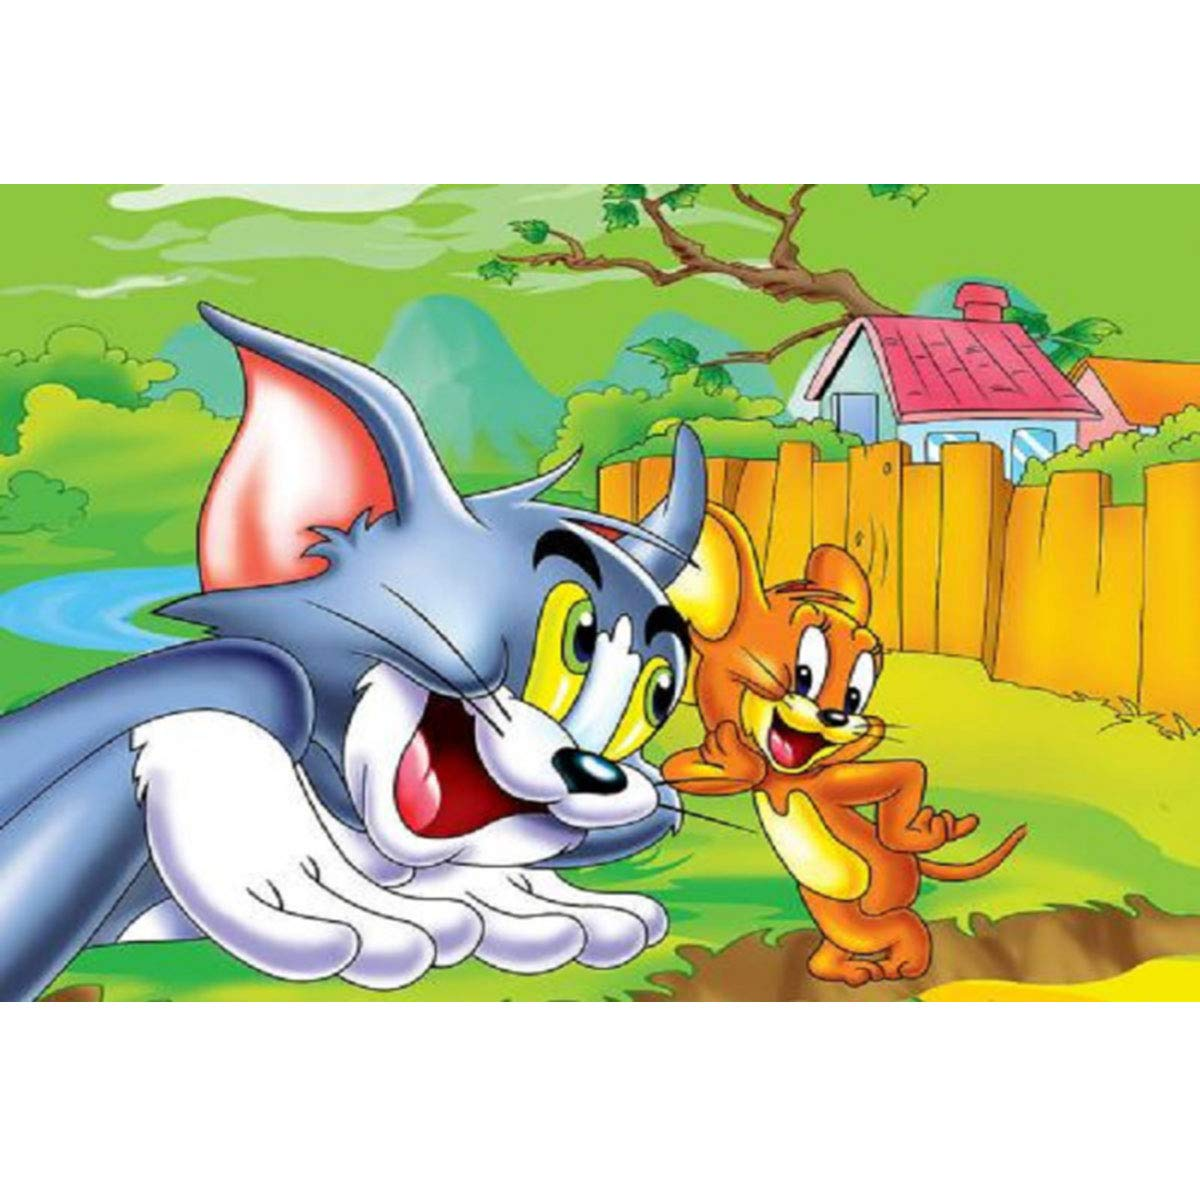 15.7x11.8inch//40x30cm Tom and Jerry Leezeshaw 5D DIY Diamond Painting By Number Kits Fameless Rhinestone Embroidery Paintings Pictures For Home Decor